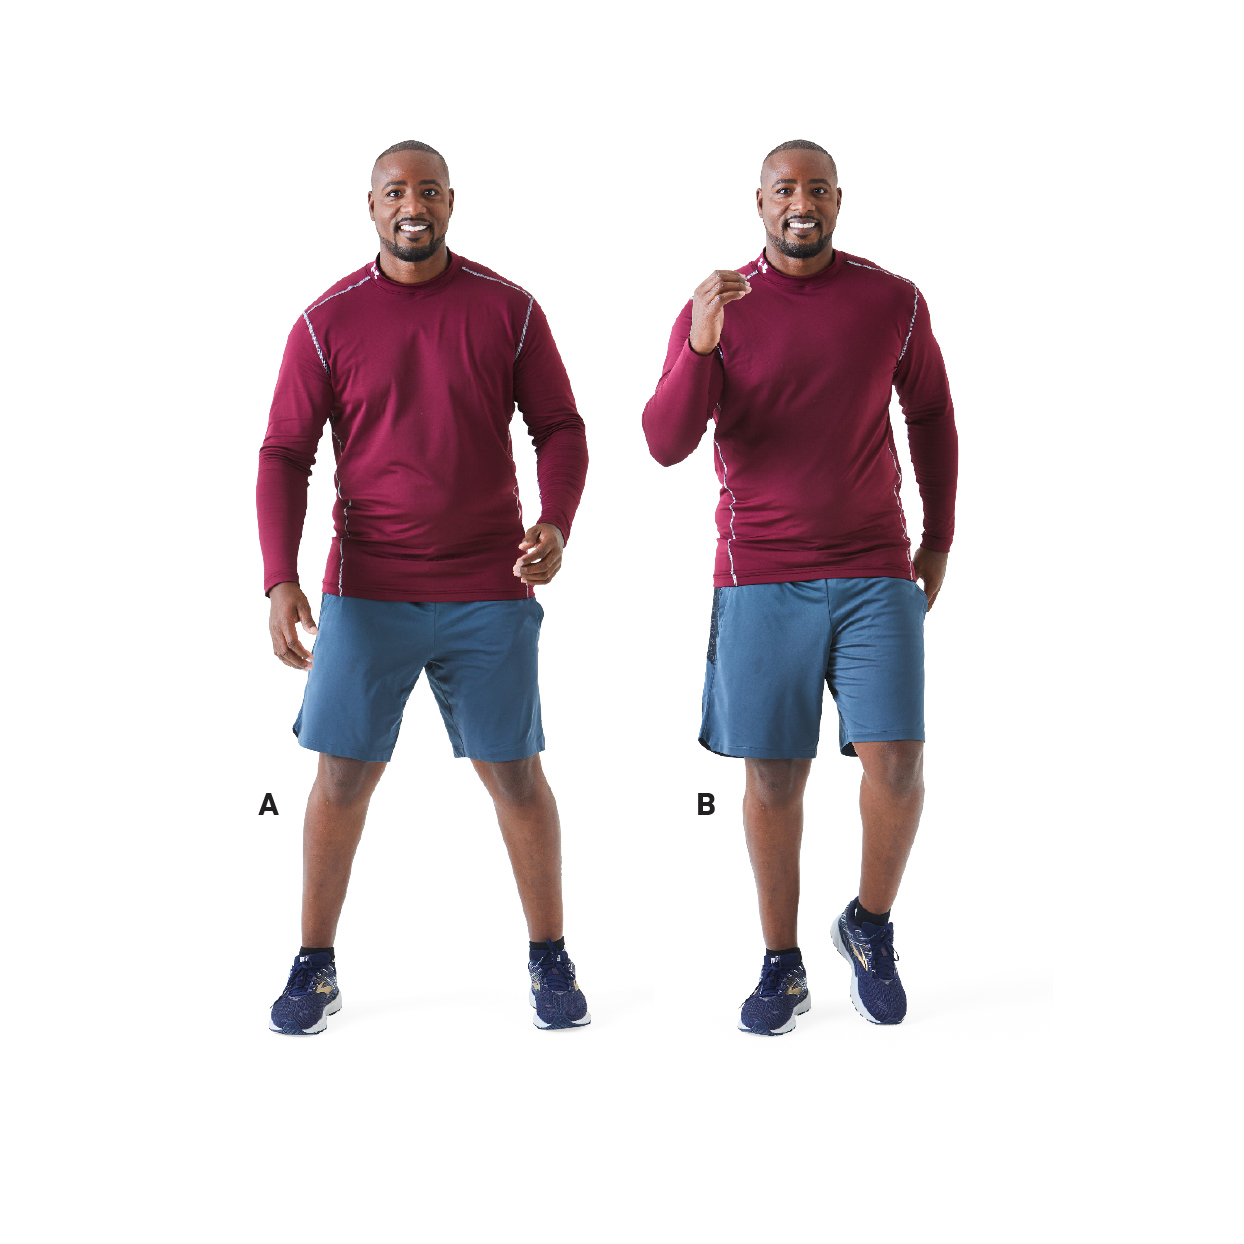 man demonstrating side steps exercise